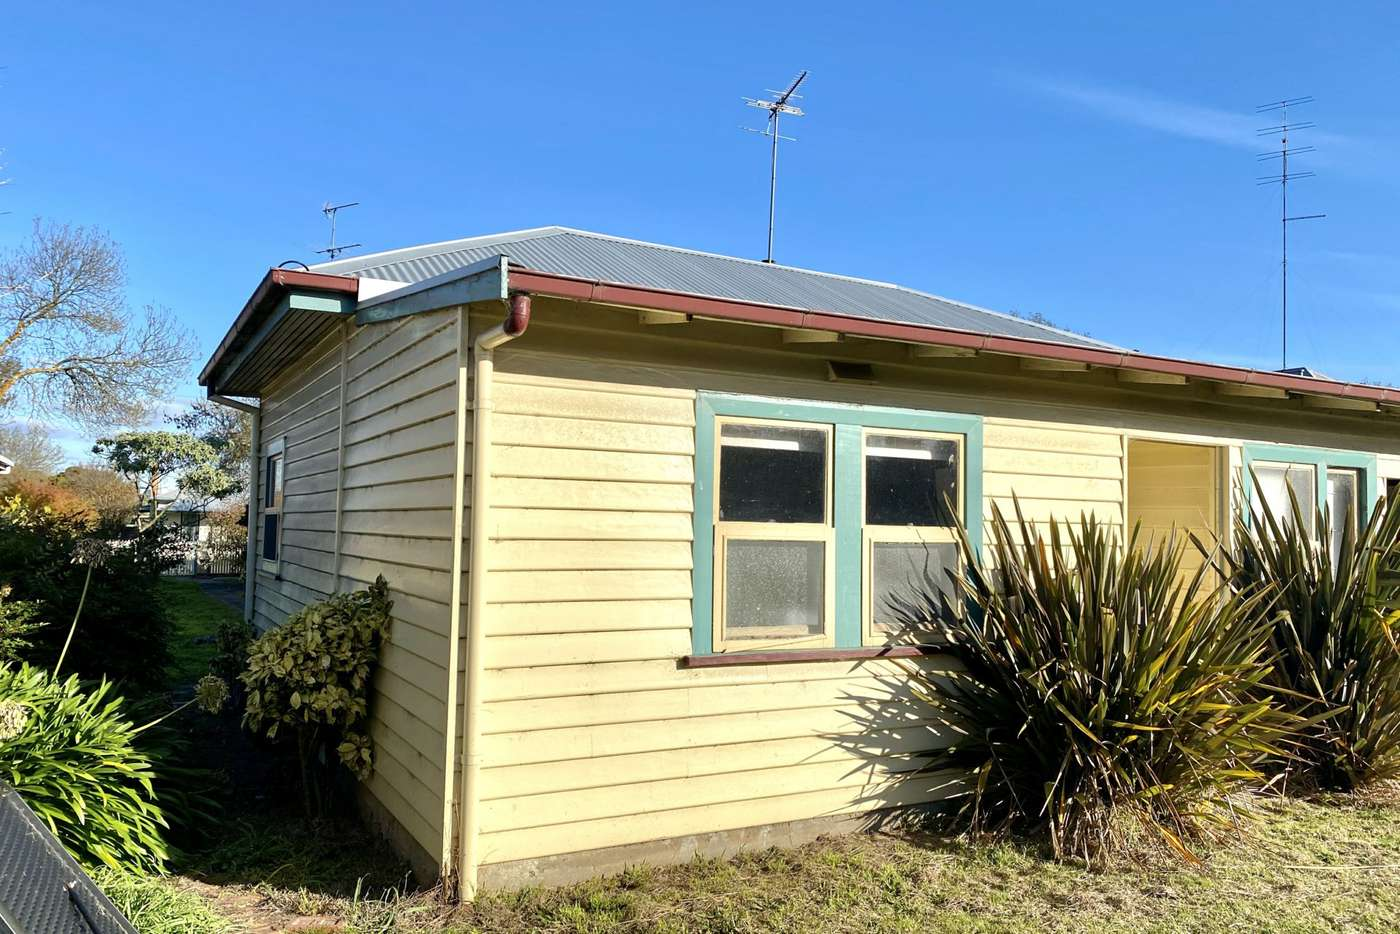 Seventh view of Homely house listing, 23 Manifold Street, Colac VIC 3250